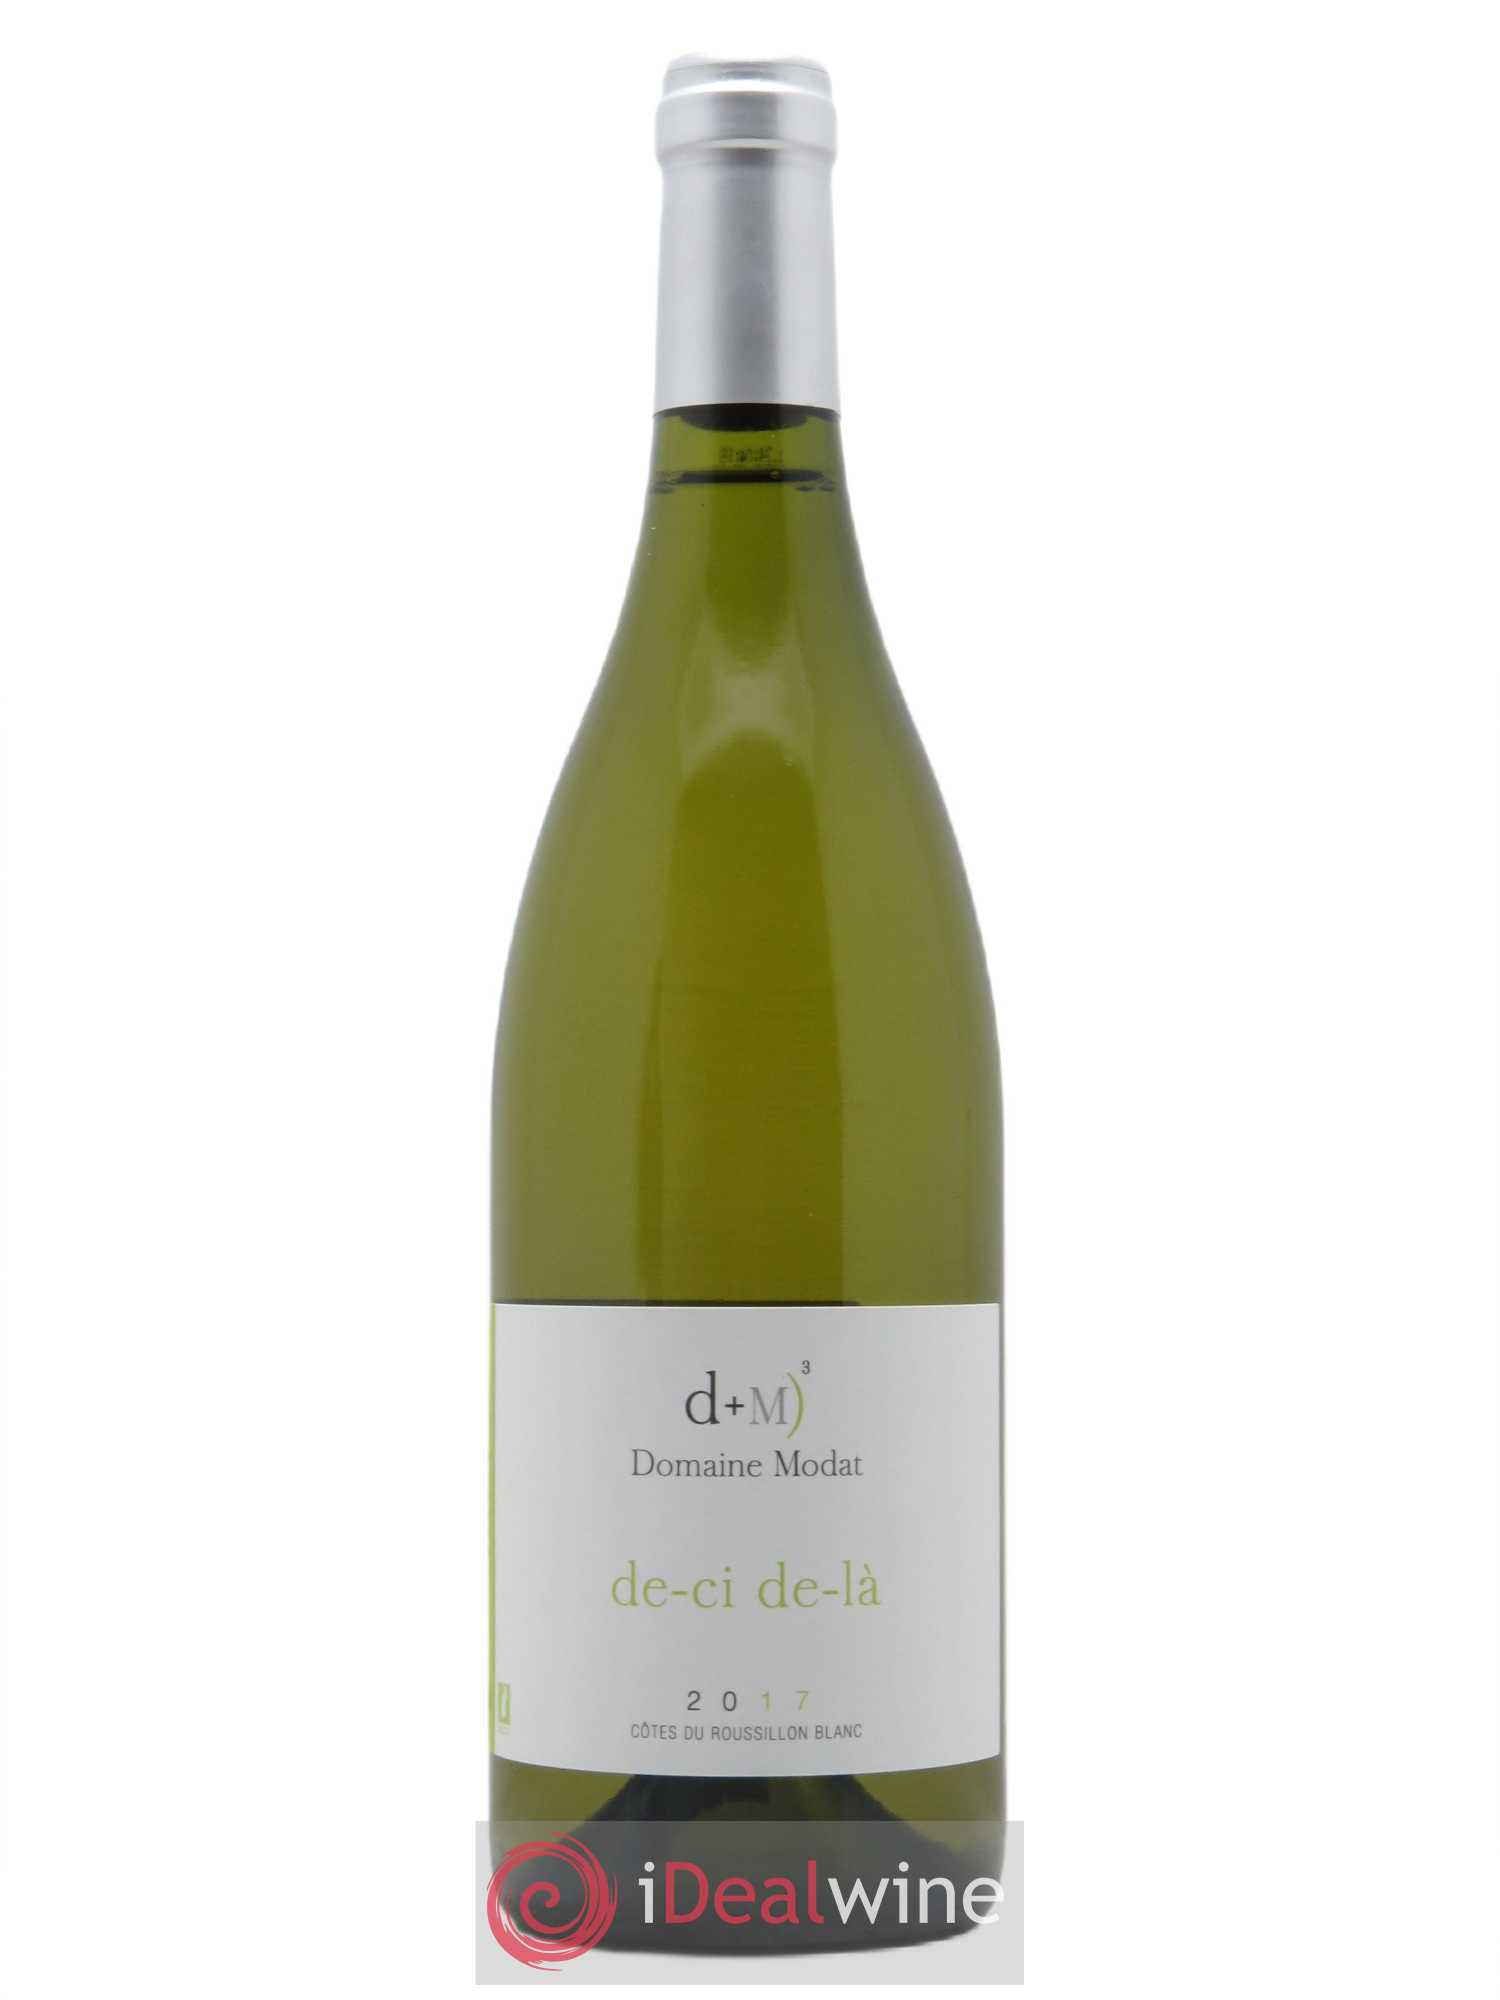 Côtes du Roussillon Modat (Domaine) De-ci de-là  2017 - Lot of 1 Bottle